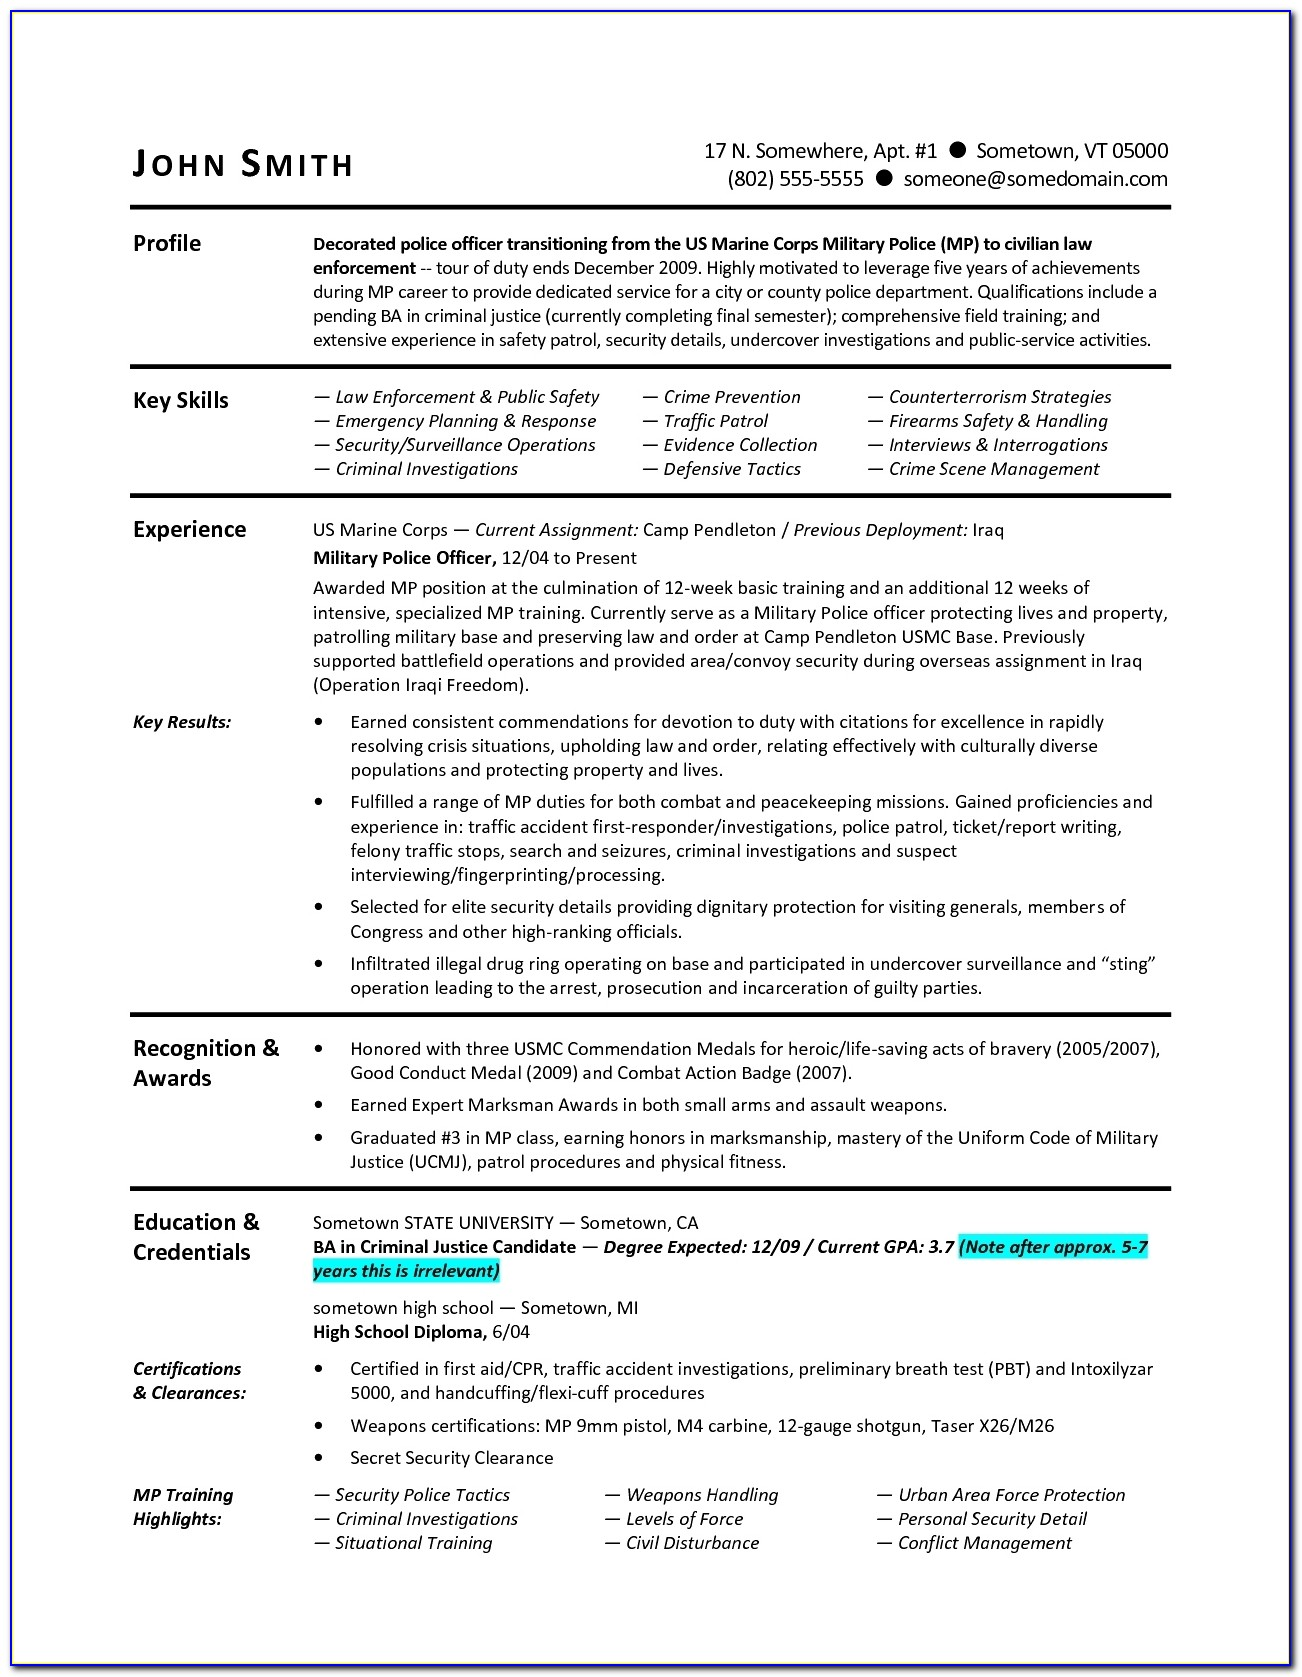 Military Veteran Resume. 7 Amazing Government & Military Resume Within Military Resume Builder 2017